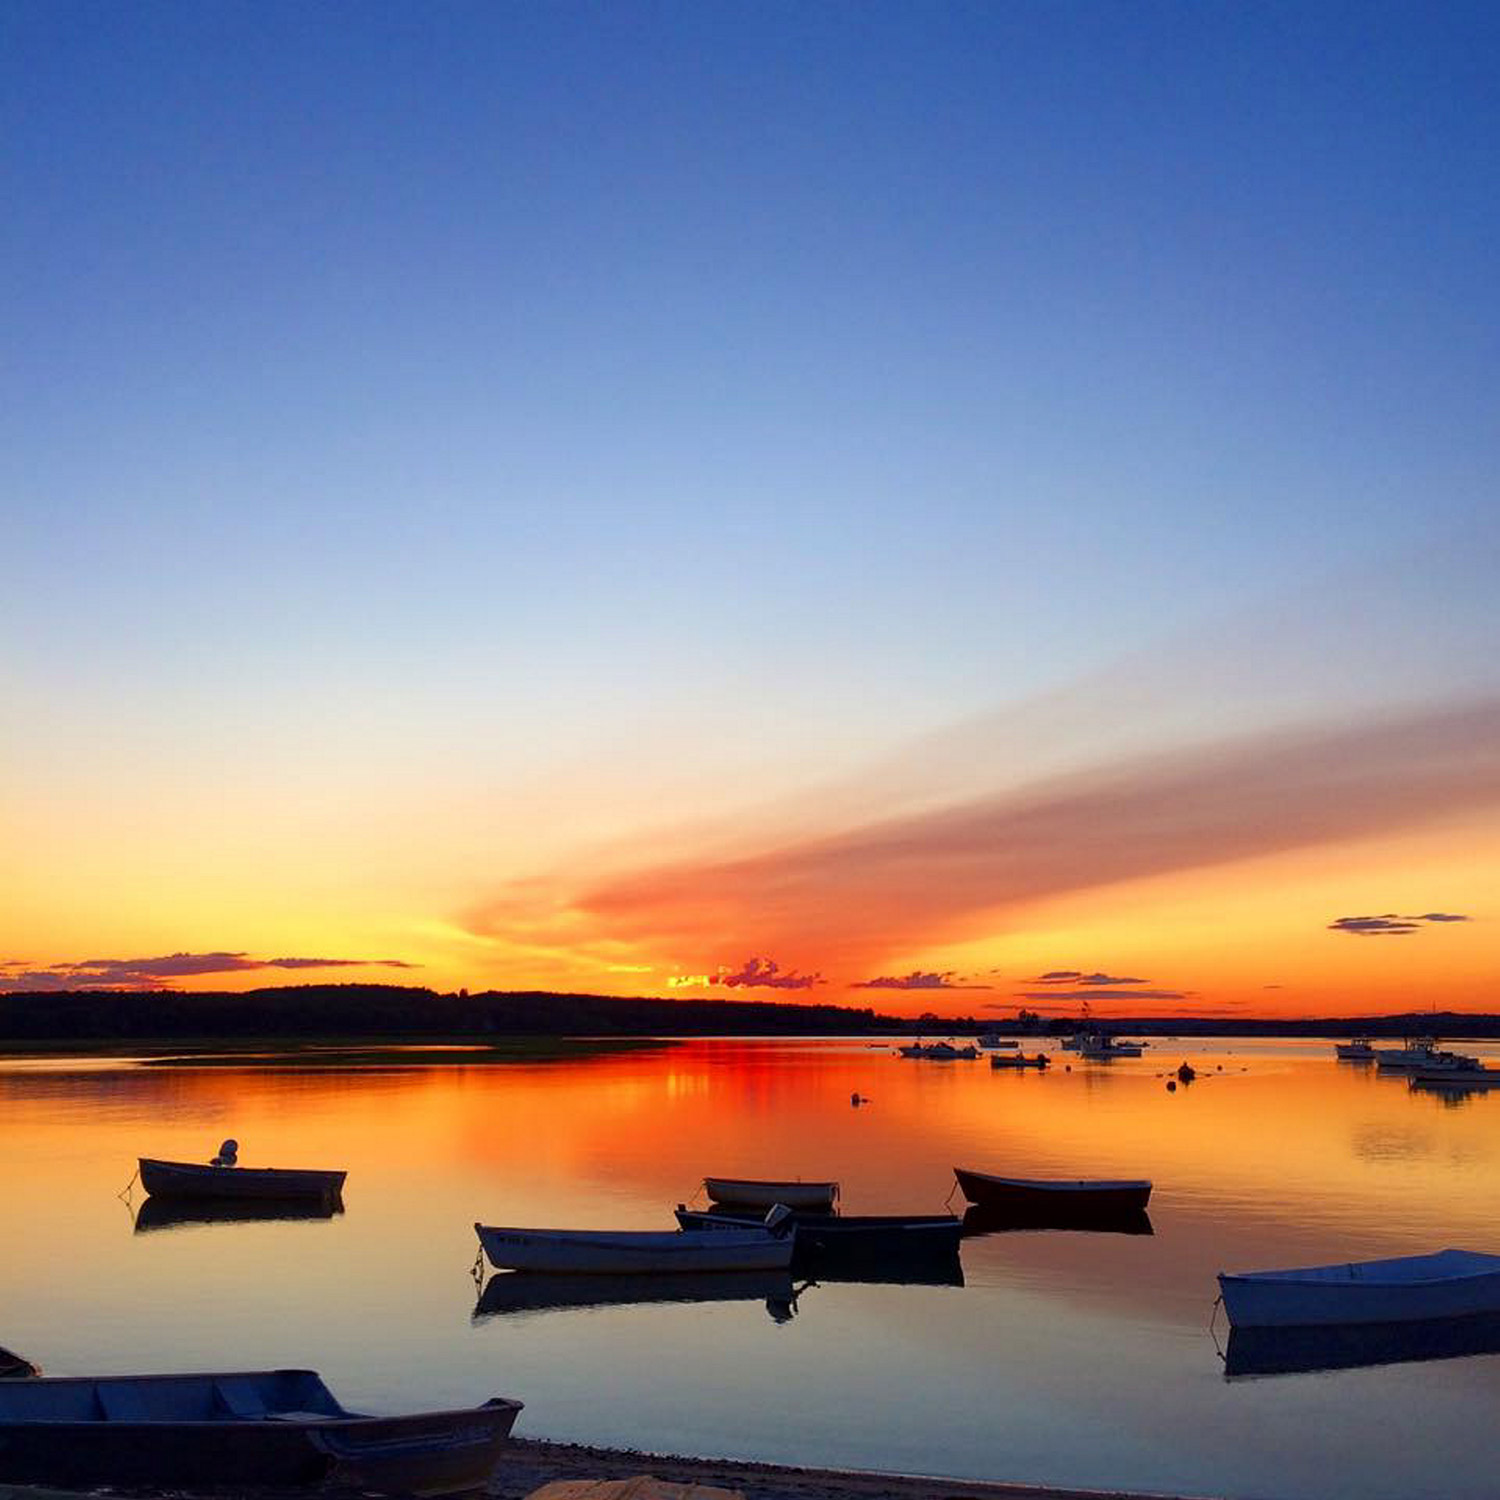 """Brian York of Scarborough sums up this Pine Point scene as """"Maine: The Way Life Is."""" And for the many out-of-staters visiting, the way they might wish life were wherever they will soon be returning. As the sign says near the Maine-New Hampshire border, worth a visit, worth a lifetime."""